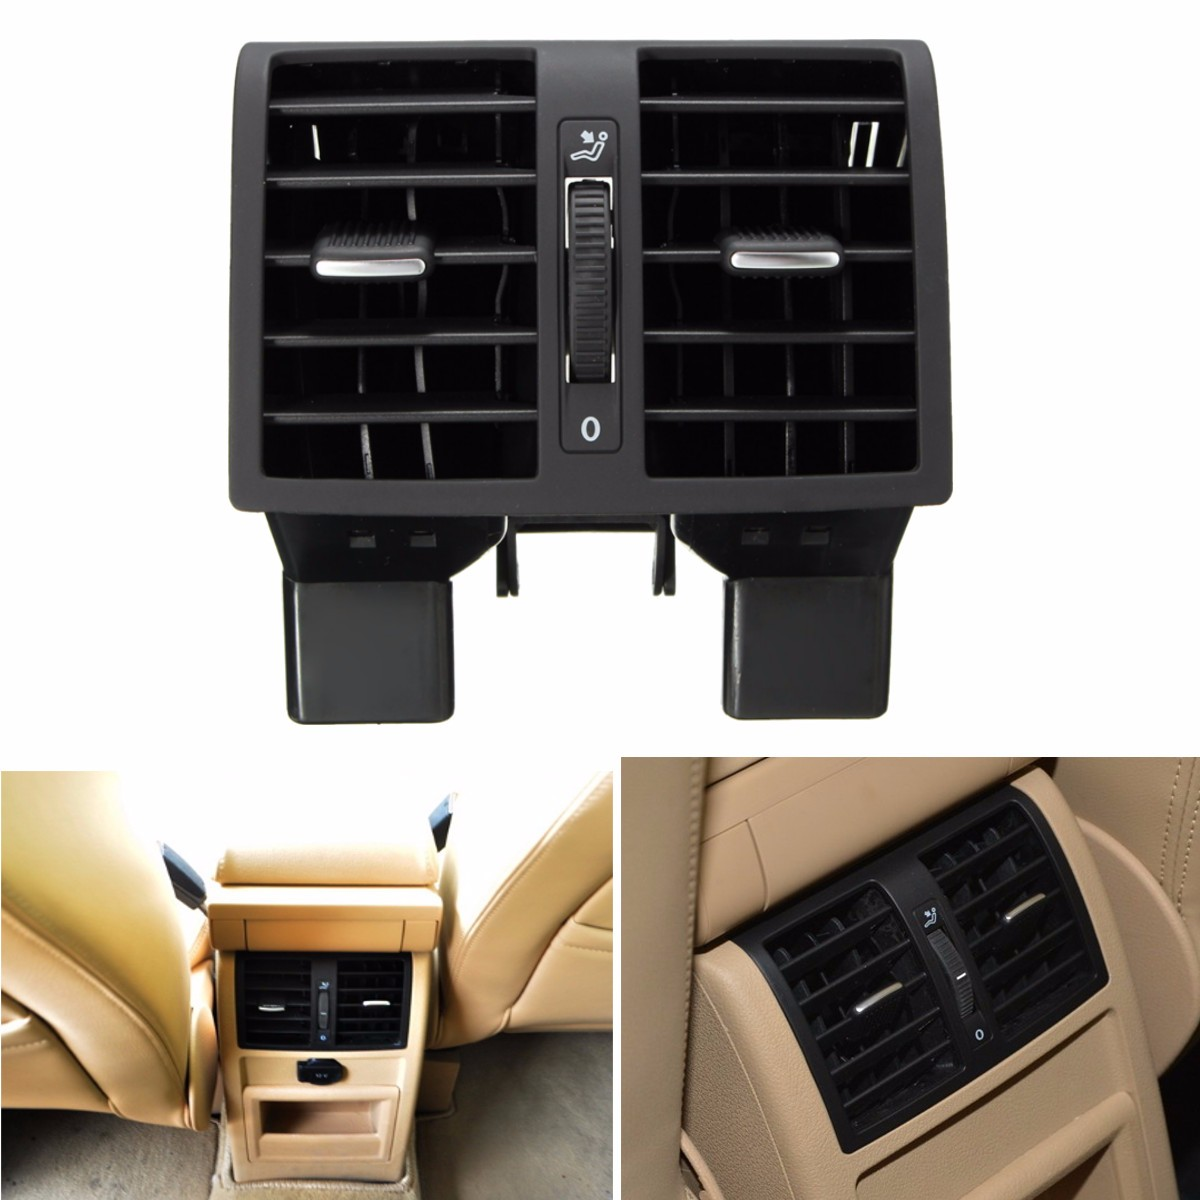 Citall 1td 819 203 Rear Ac Air Conditioning Outlet Vent 1td819203a Comport Carpet Karpet Mercy C250 Coupe 2 Pintu Deluxe 12cm Centre Console 1t0819203 1td819203b For Vw Touran 2003